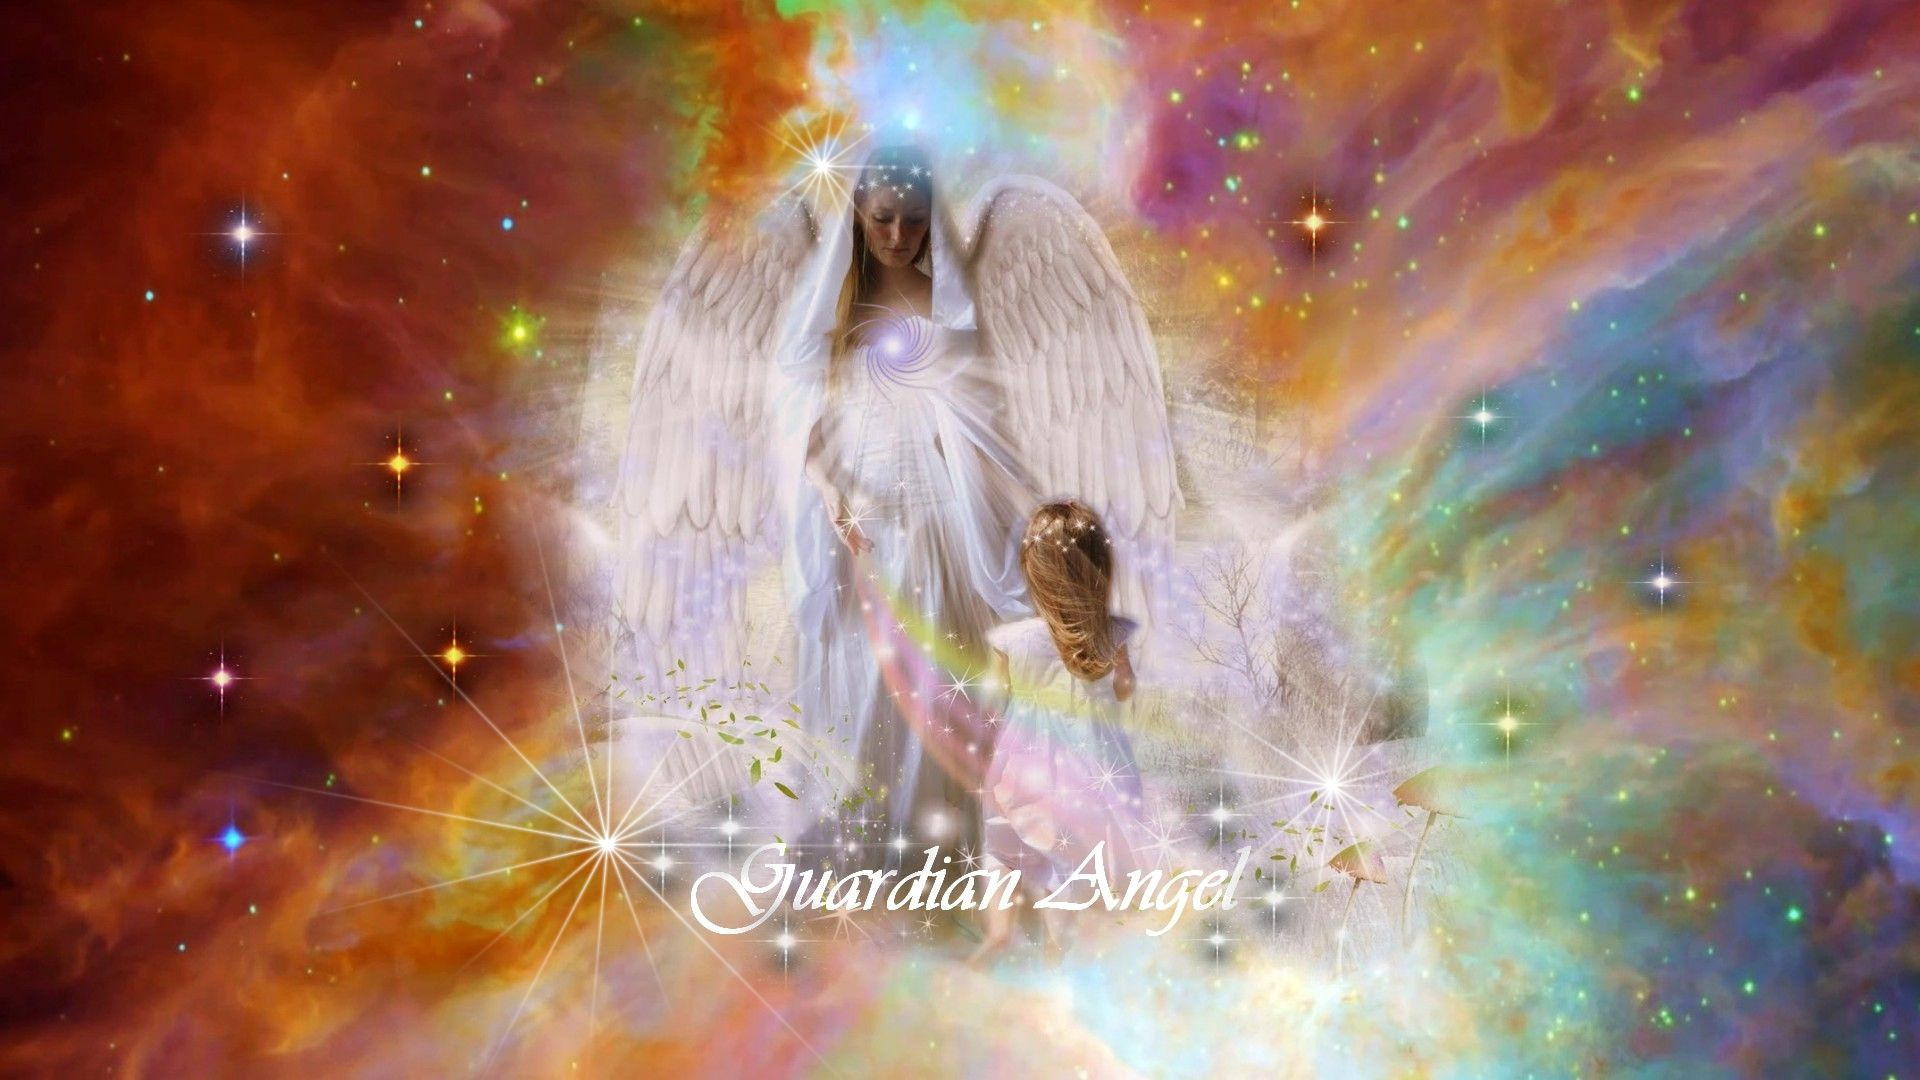 The Angel Pictures Are Beautiful